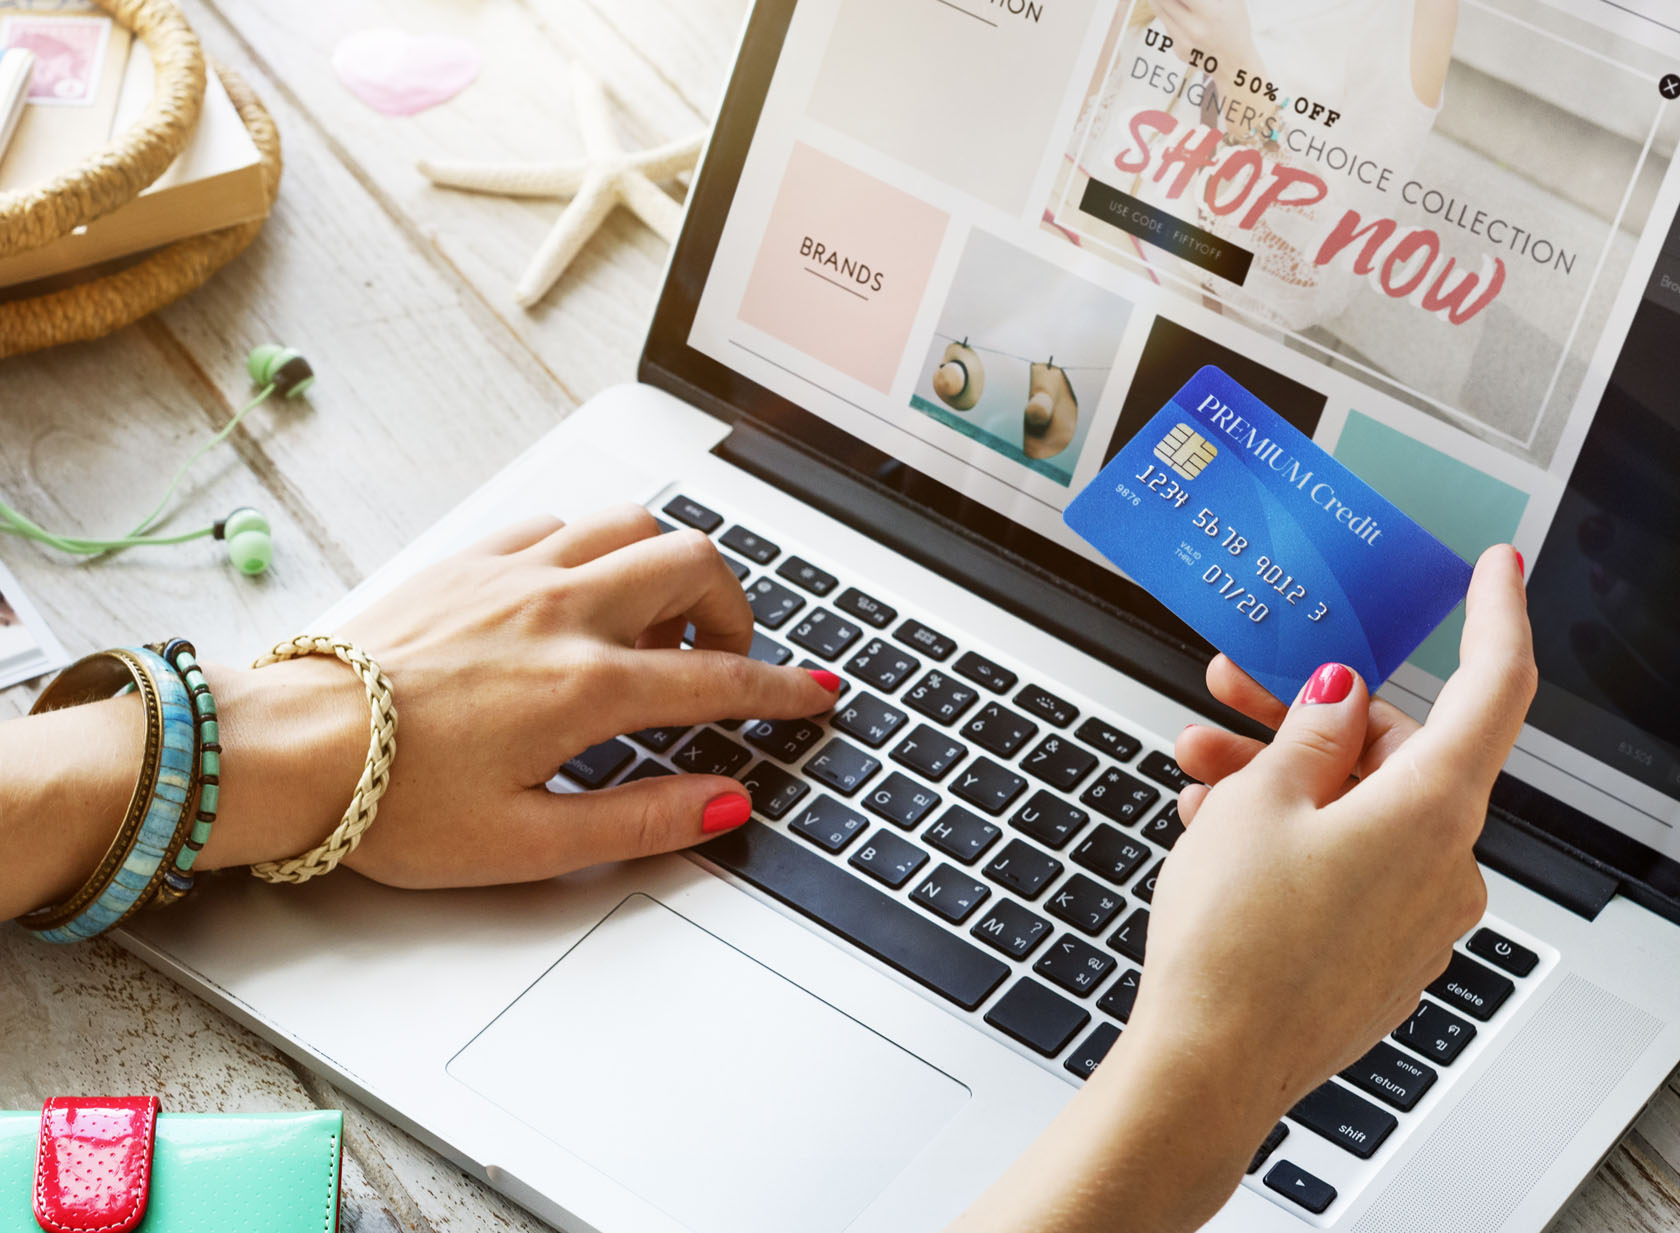 Drive sales to your online shop through social media